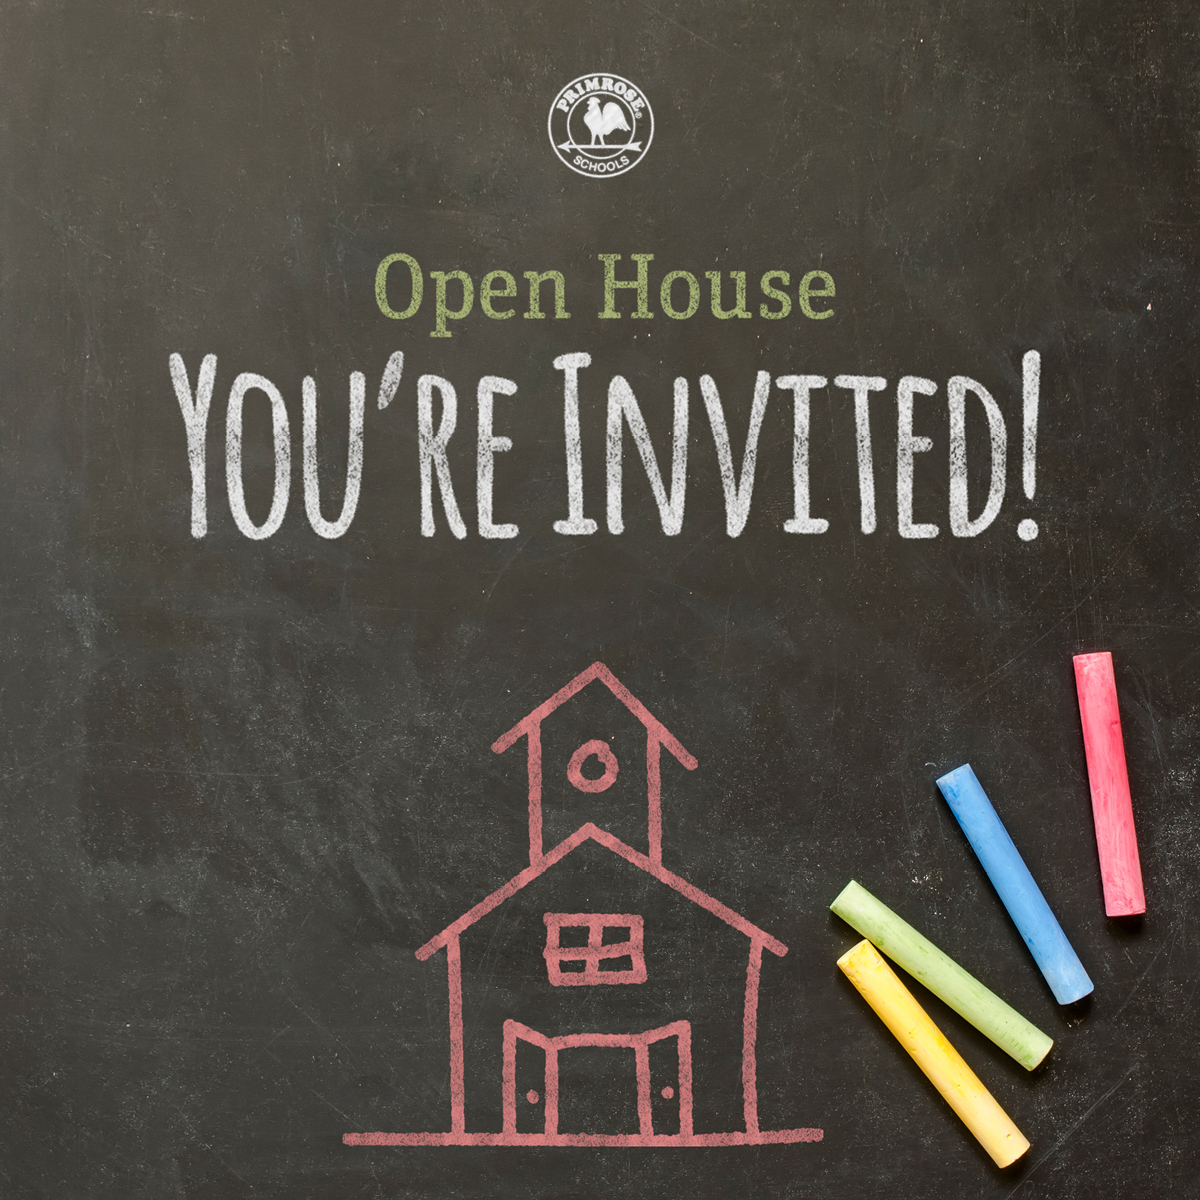 open house, primrose school of spring klein, enrollment, tours, daycare, school